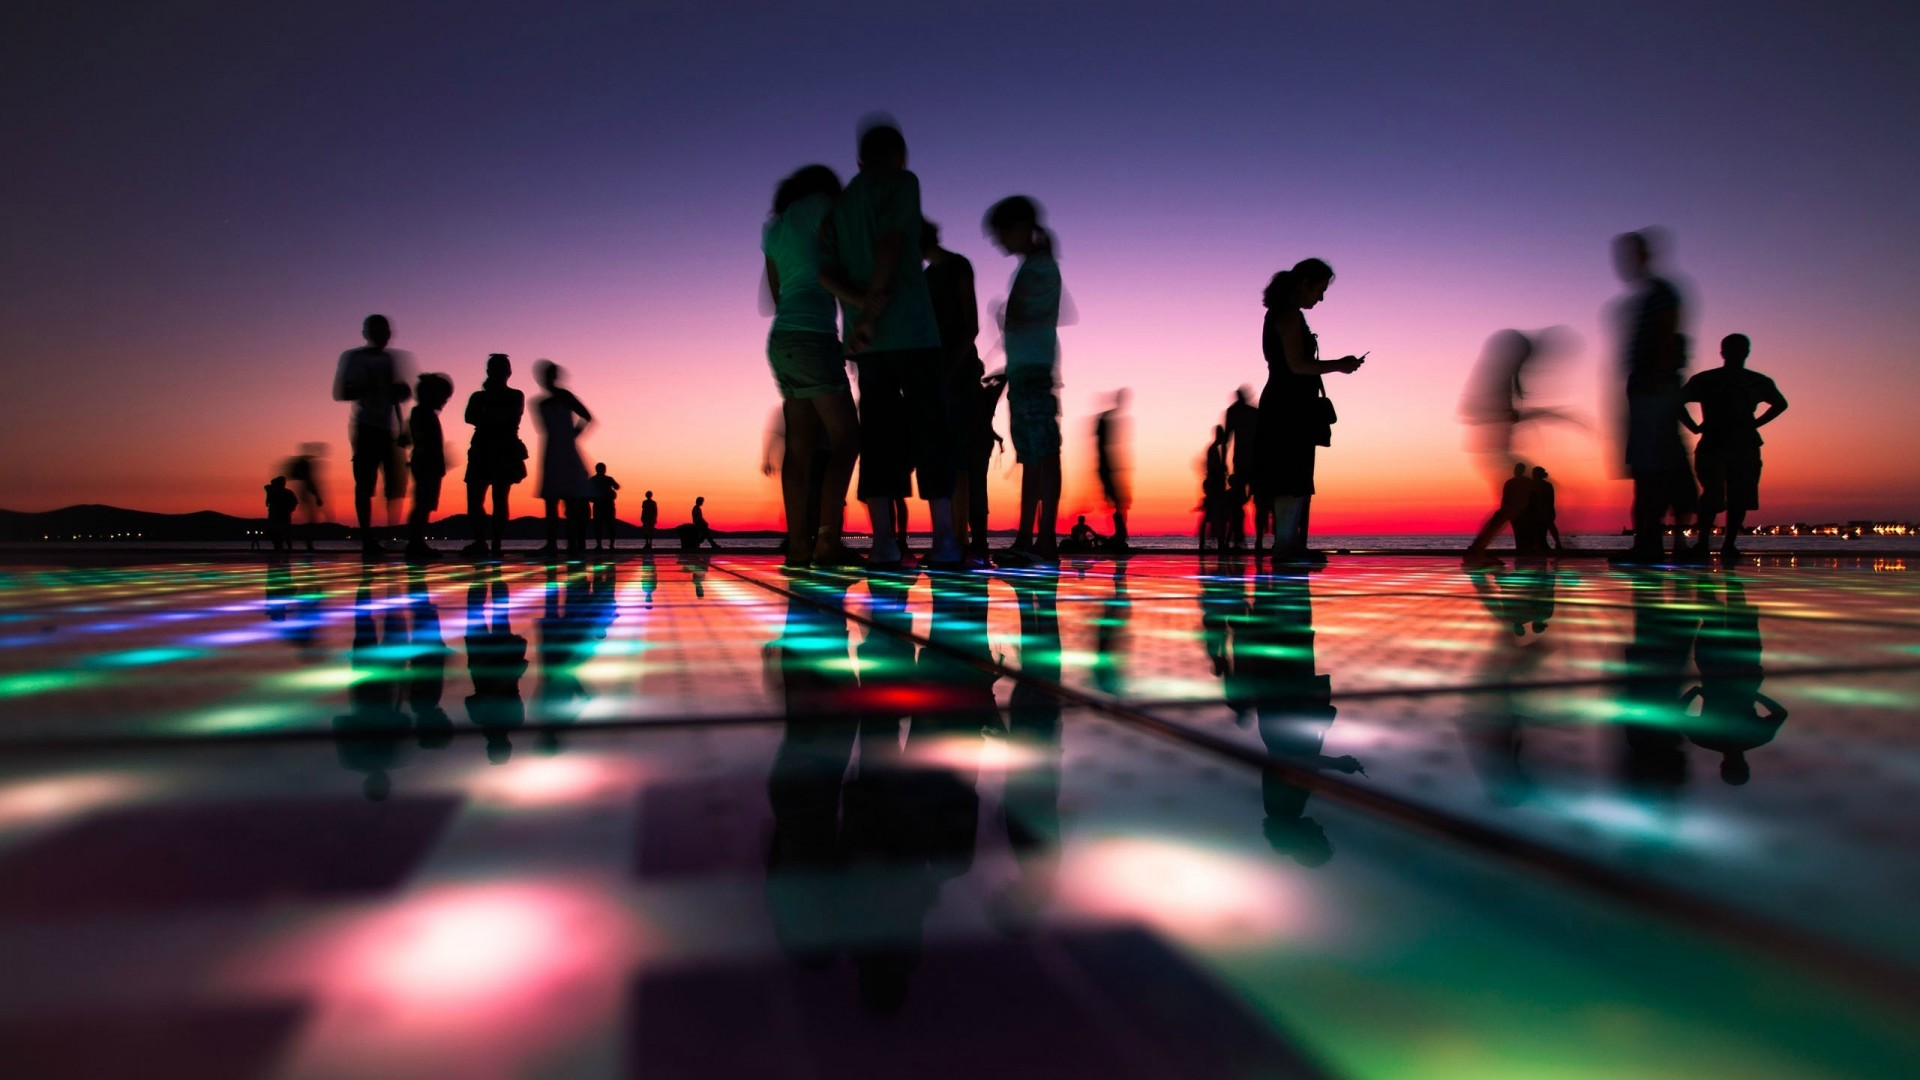 Wonderful dance floor wallpaper full hd pictures for 1234 get on the dance floor full hd video download